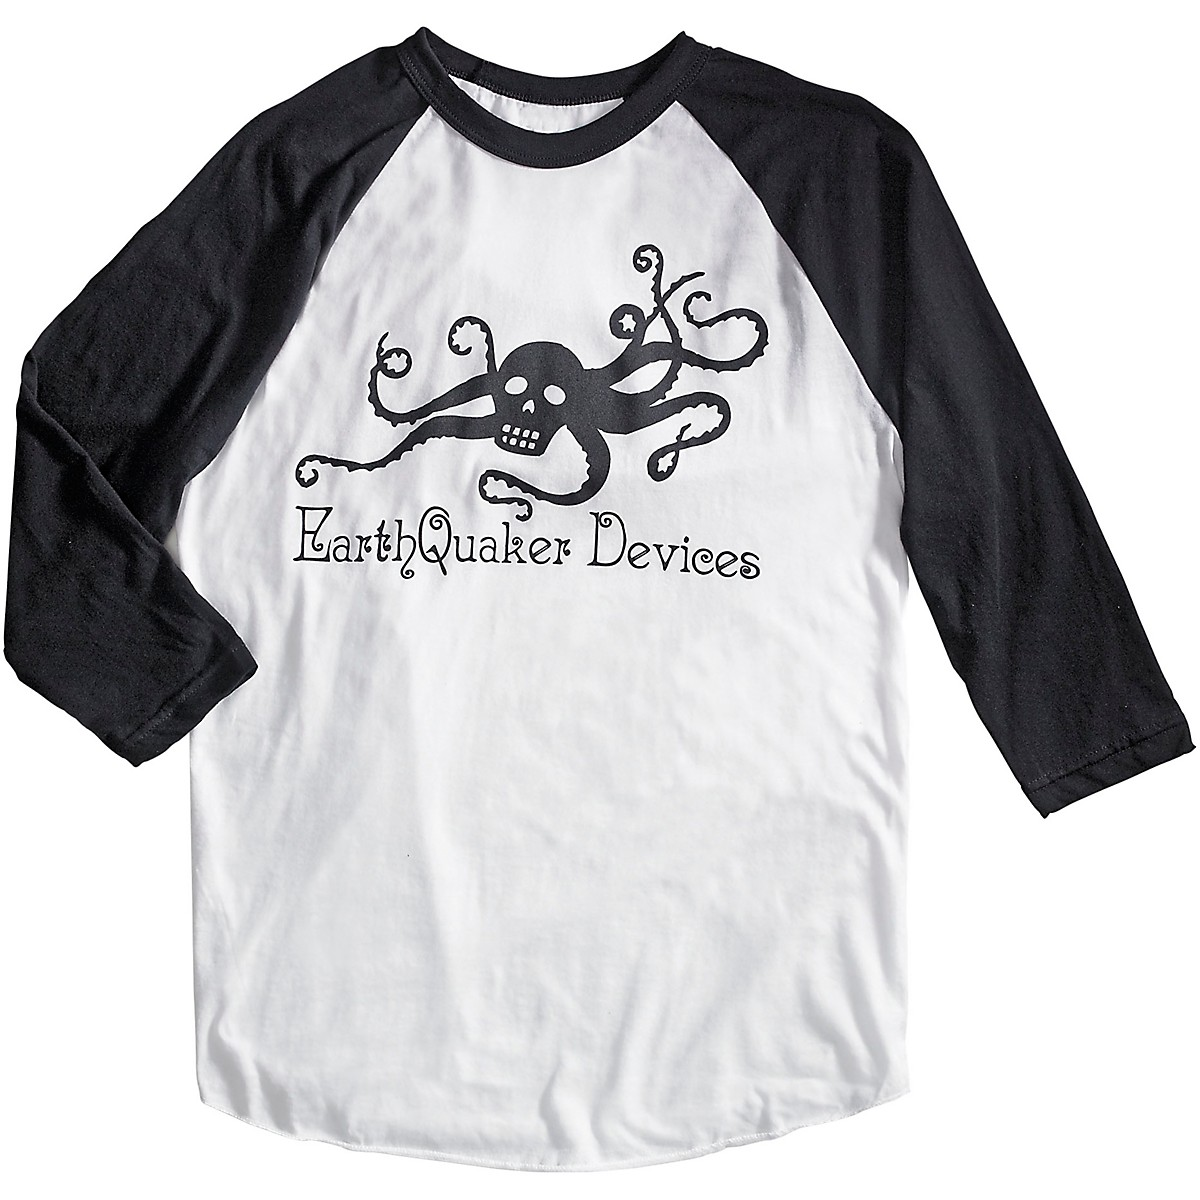 Earthquaker Devices 3/4 Sleeve Octoskull T-Shirt